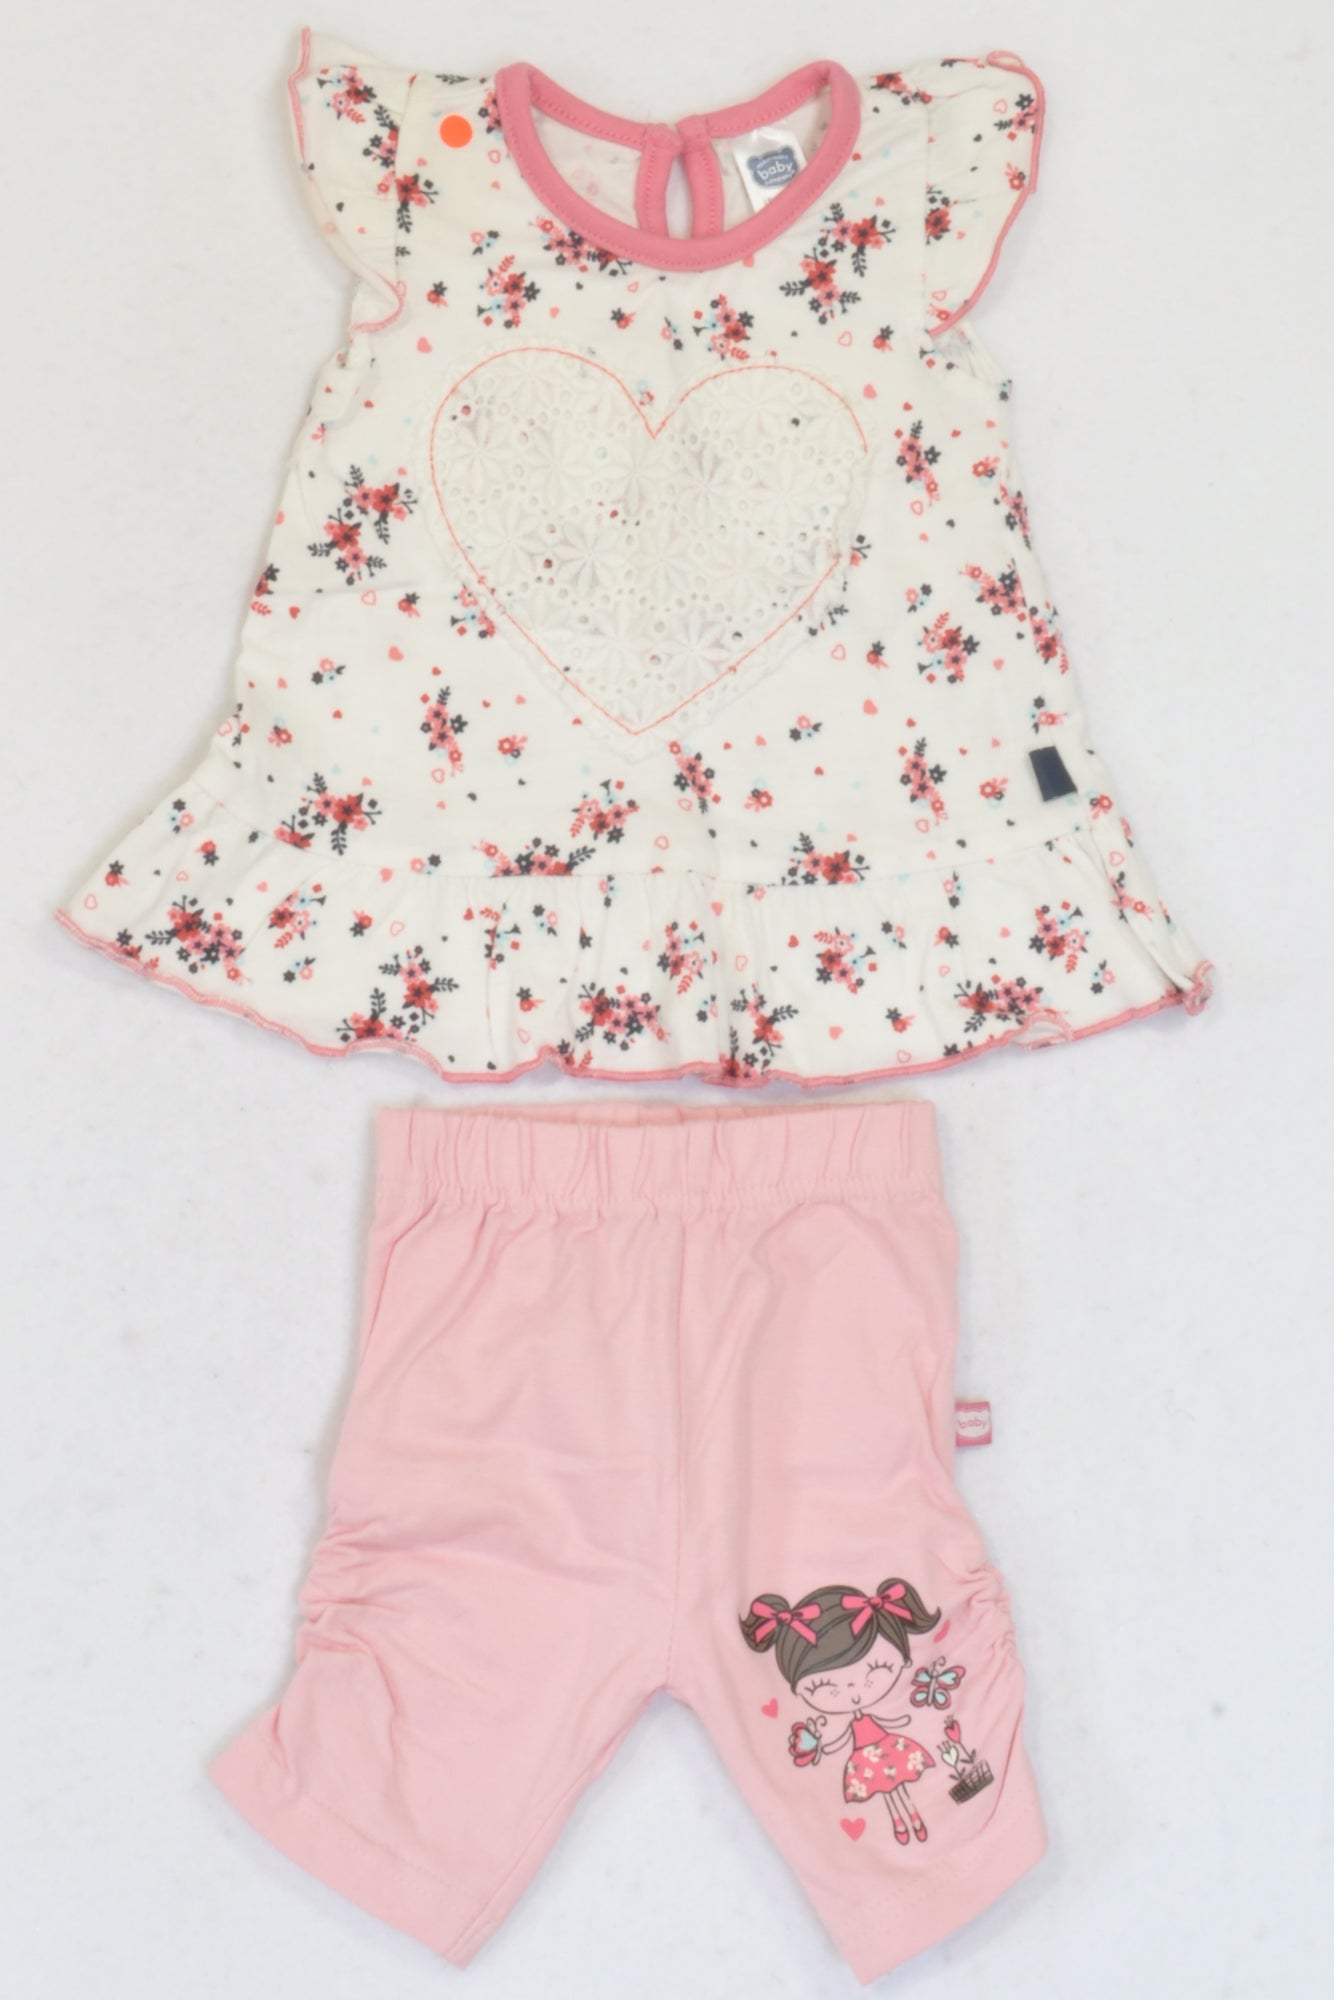 Ackermans Rose Pink Floral Heart Top & Ruched Leggings Outfit Girls 0-3 months